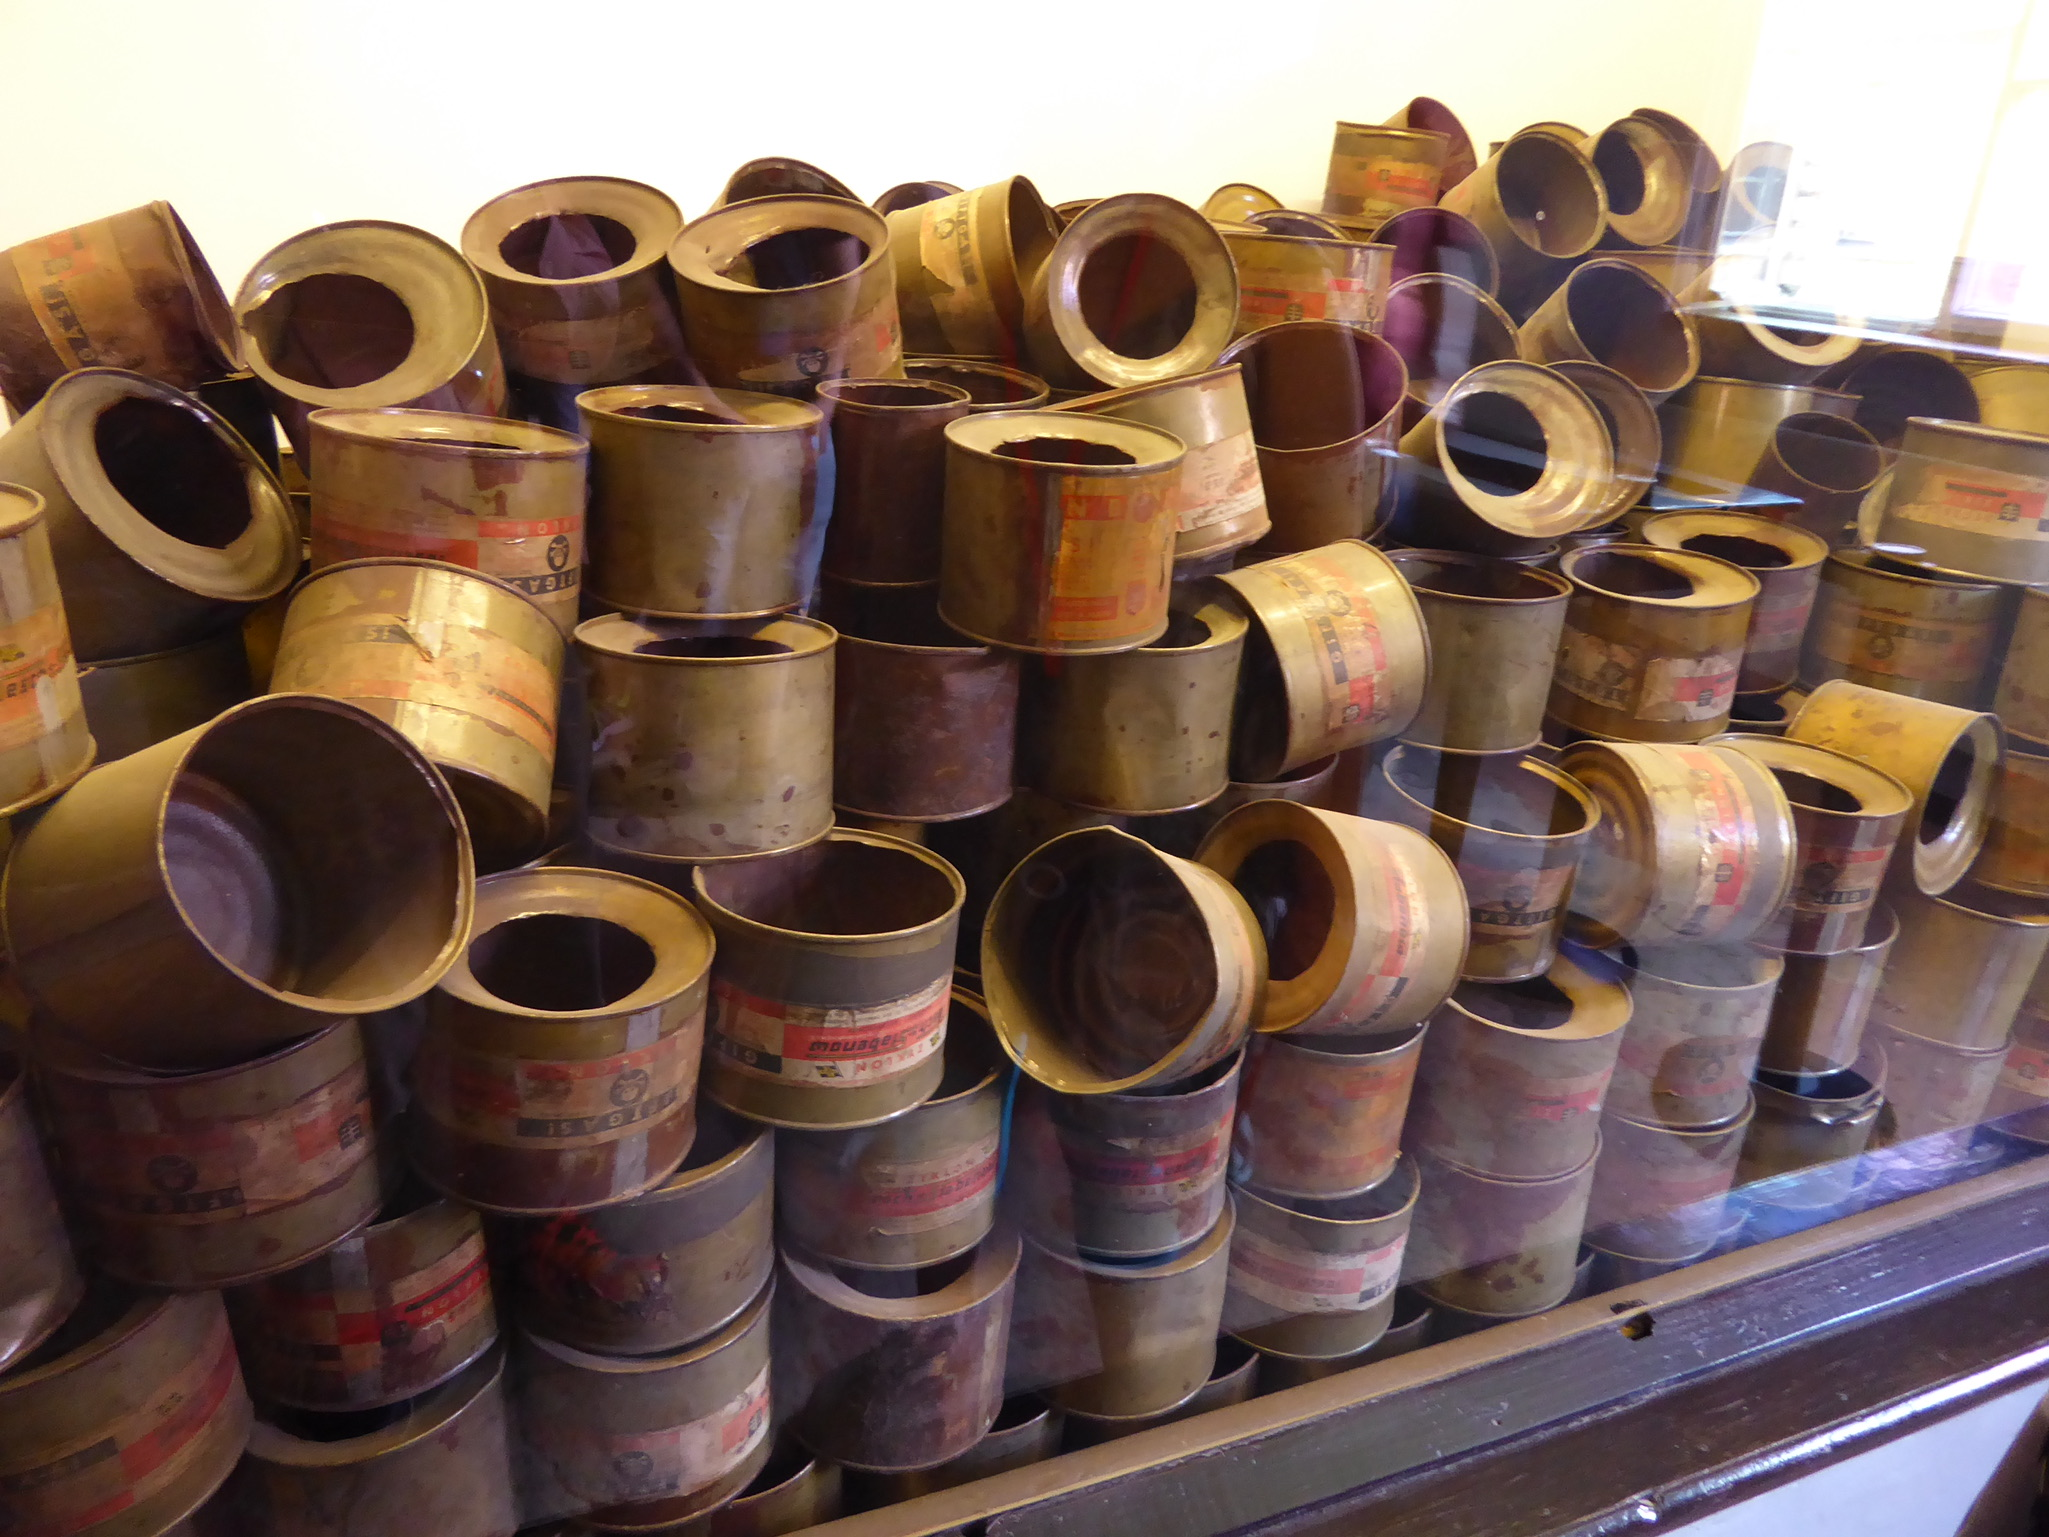 Empty canisters of cyanide that were used at Auschwitz.